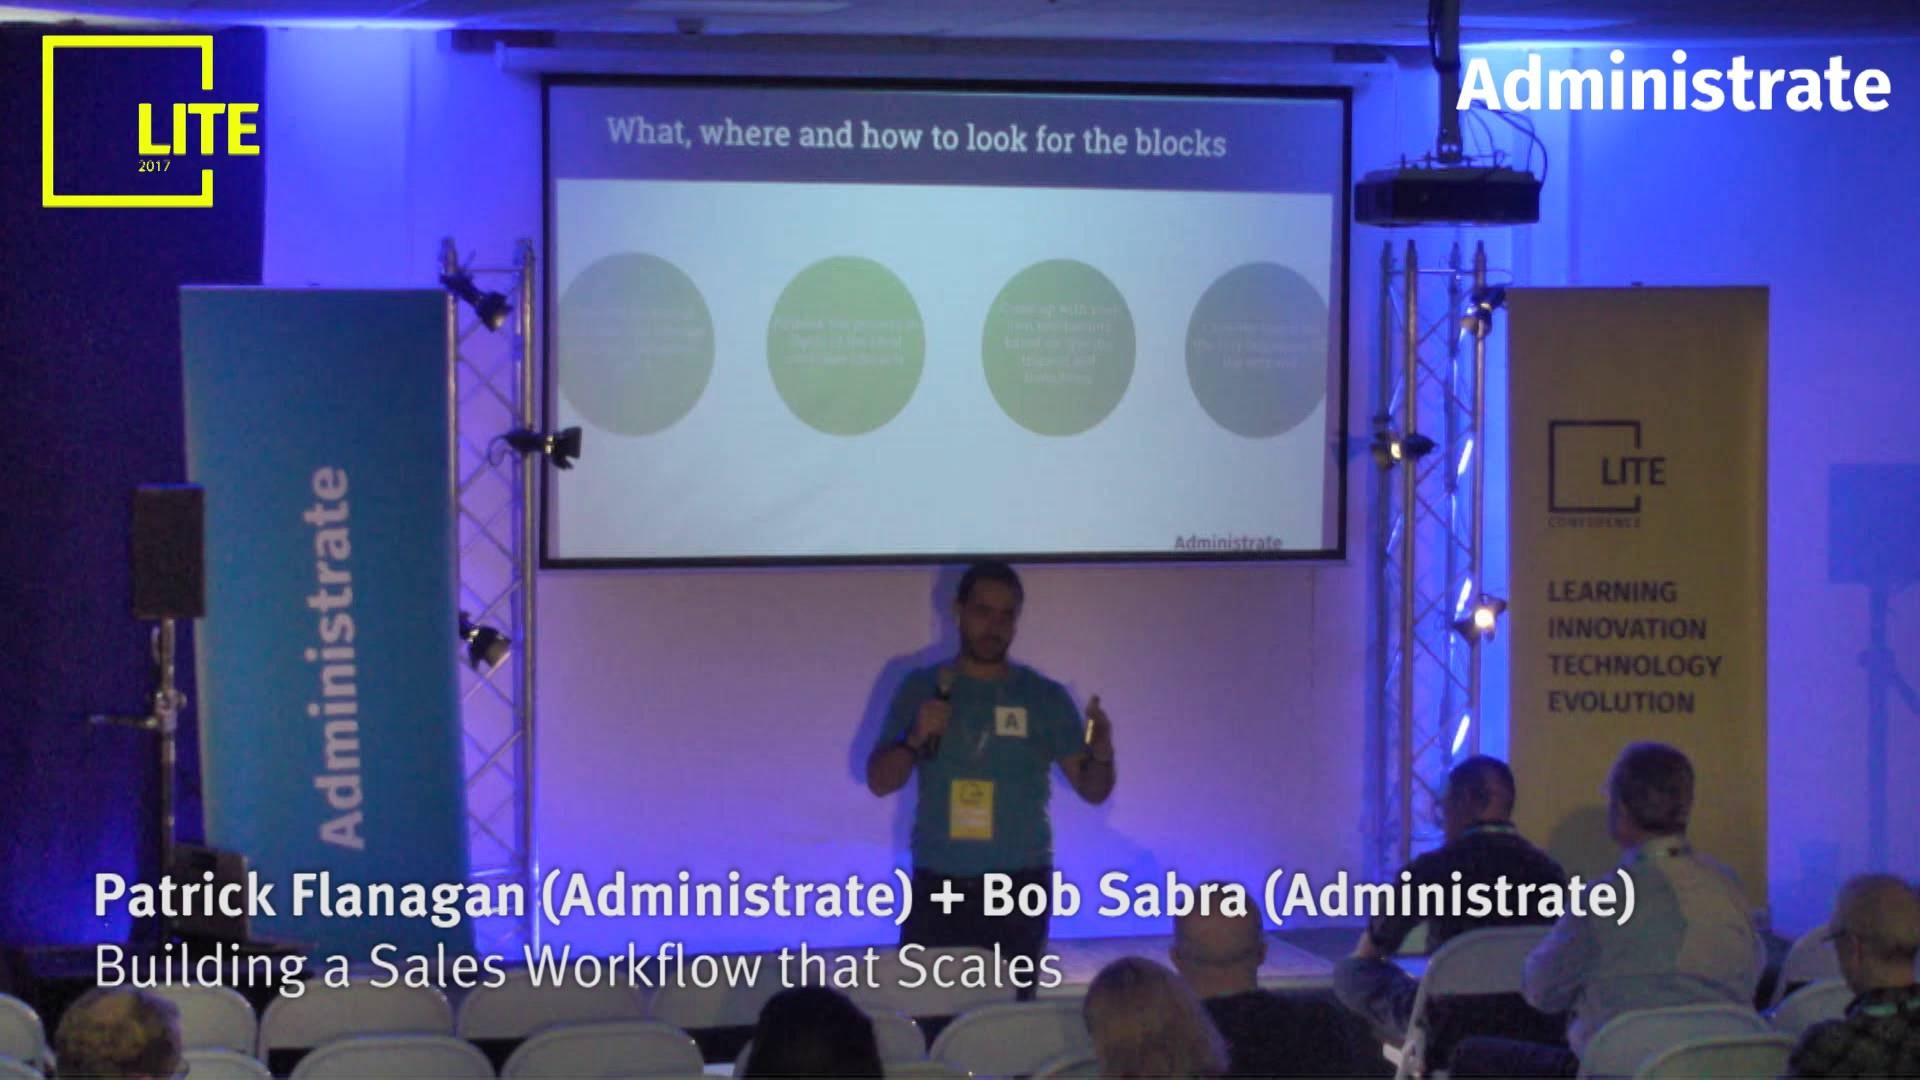 Building a Sales Workflow that Scales [Patrick Flanagan & Bob Sabra]